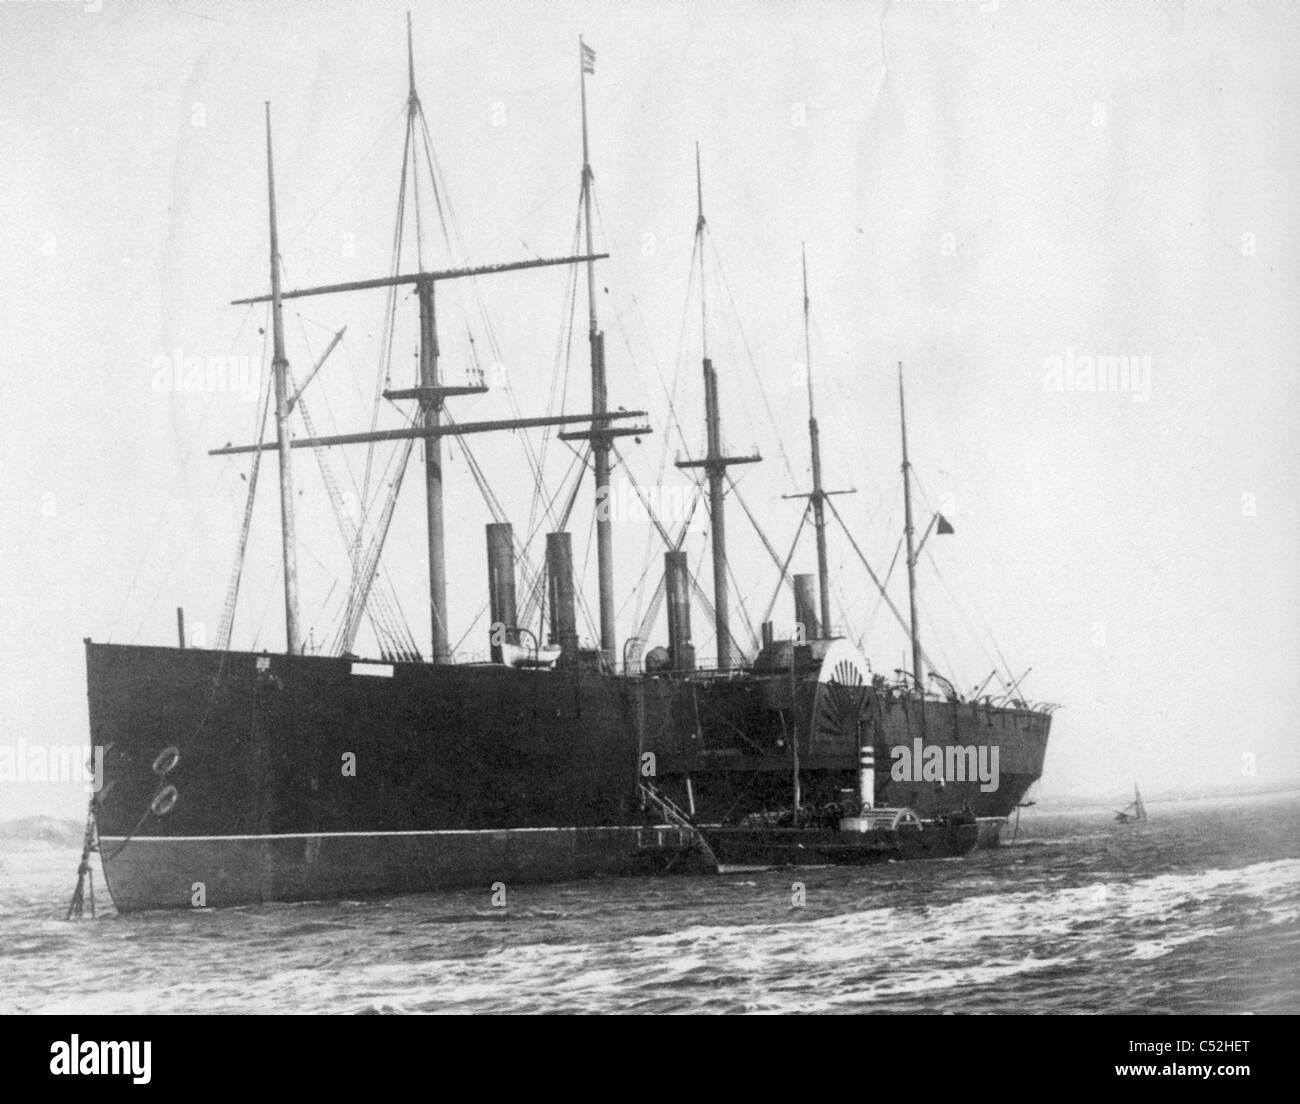 SS GREAT EASTERN  steamship in 1886, designed by Isambard Brunel - Stock Image